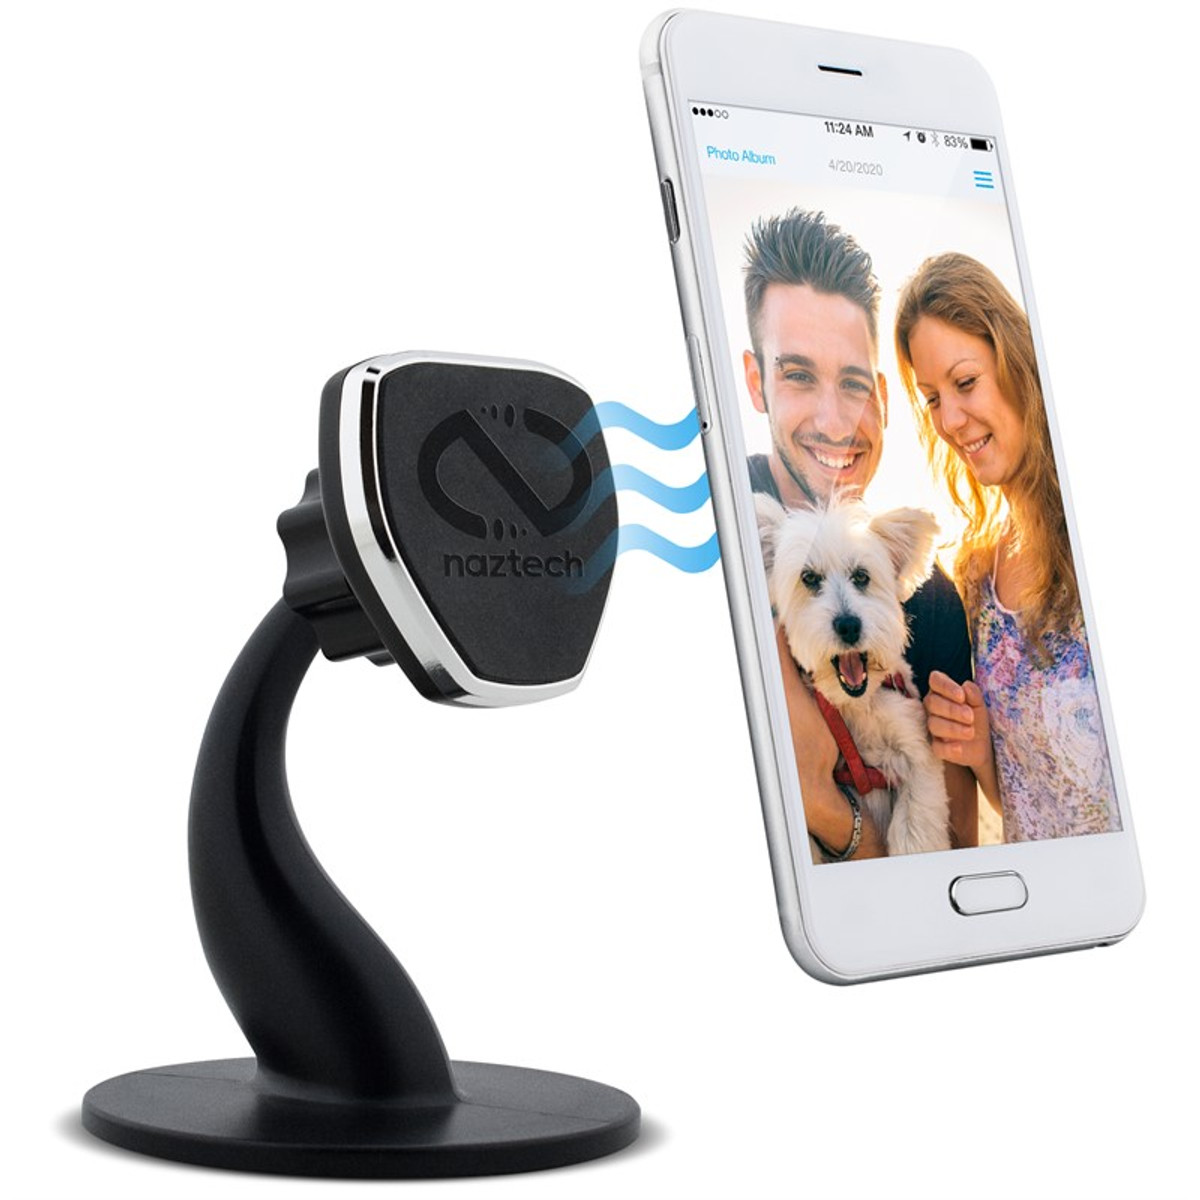 Naztech MagBuddy Magnetic Desktop Mount | 9213572